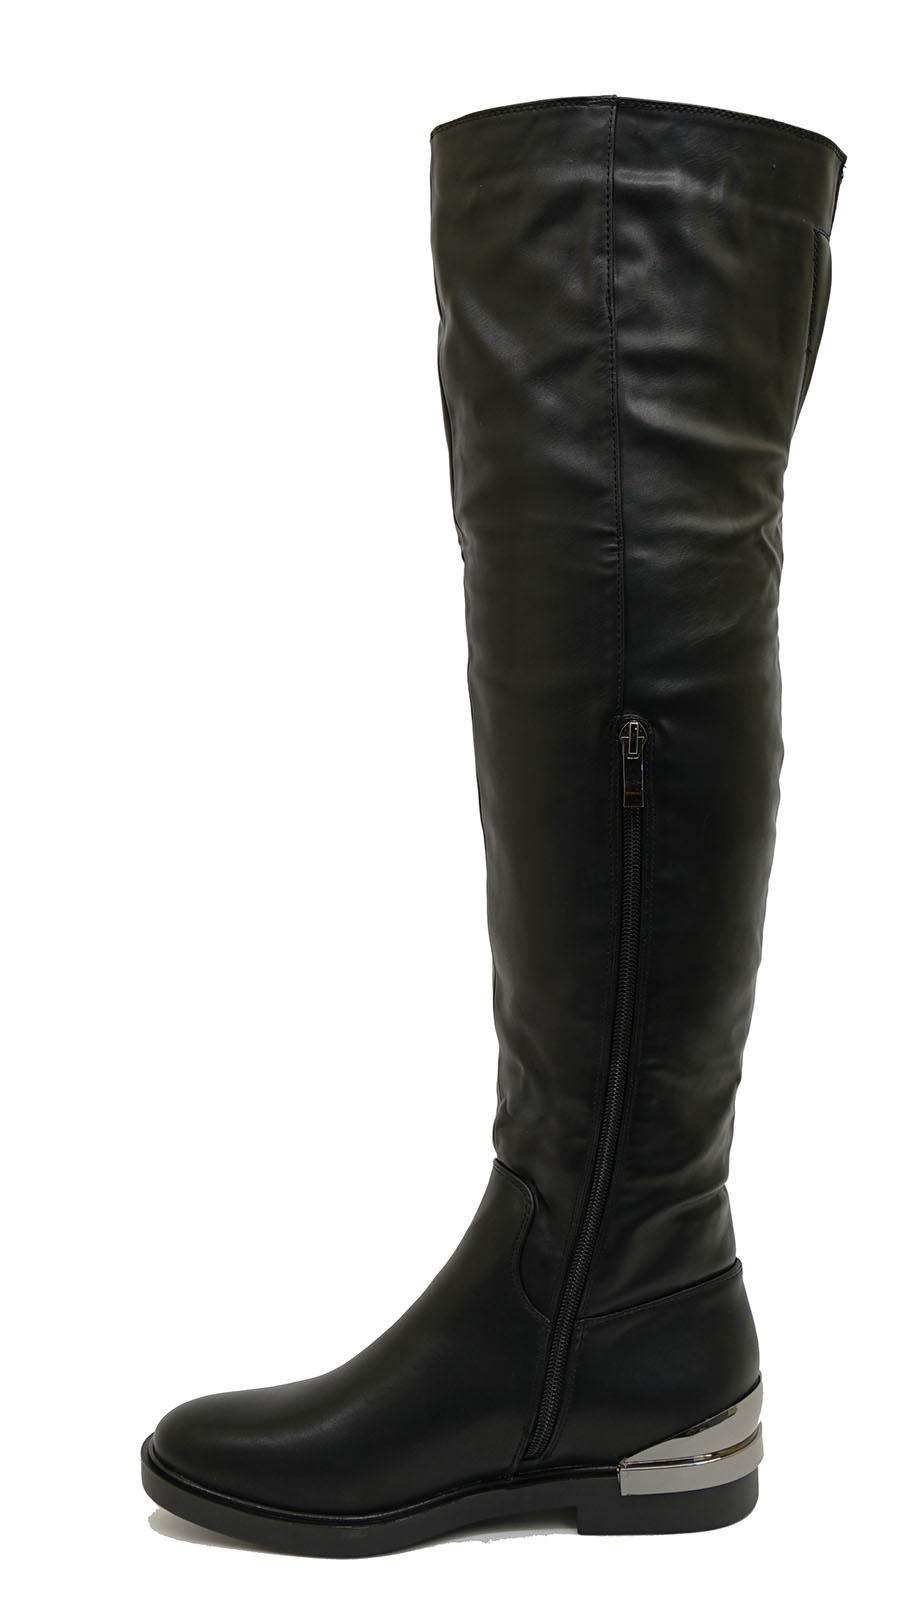 thumbnail 9 - LADIES-BLACK-FLAT-OVER-THE-KNEE-HIGH-TALL-ZIP-UP-RIDING-WORK-BOOTS-SHOES-UK-3-8